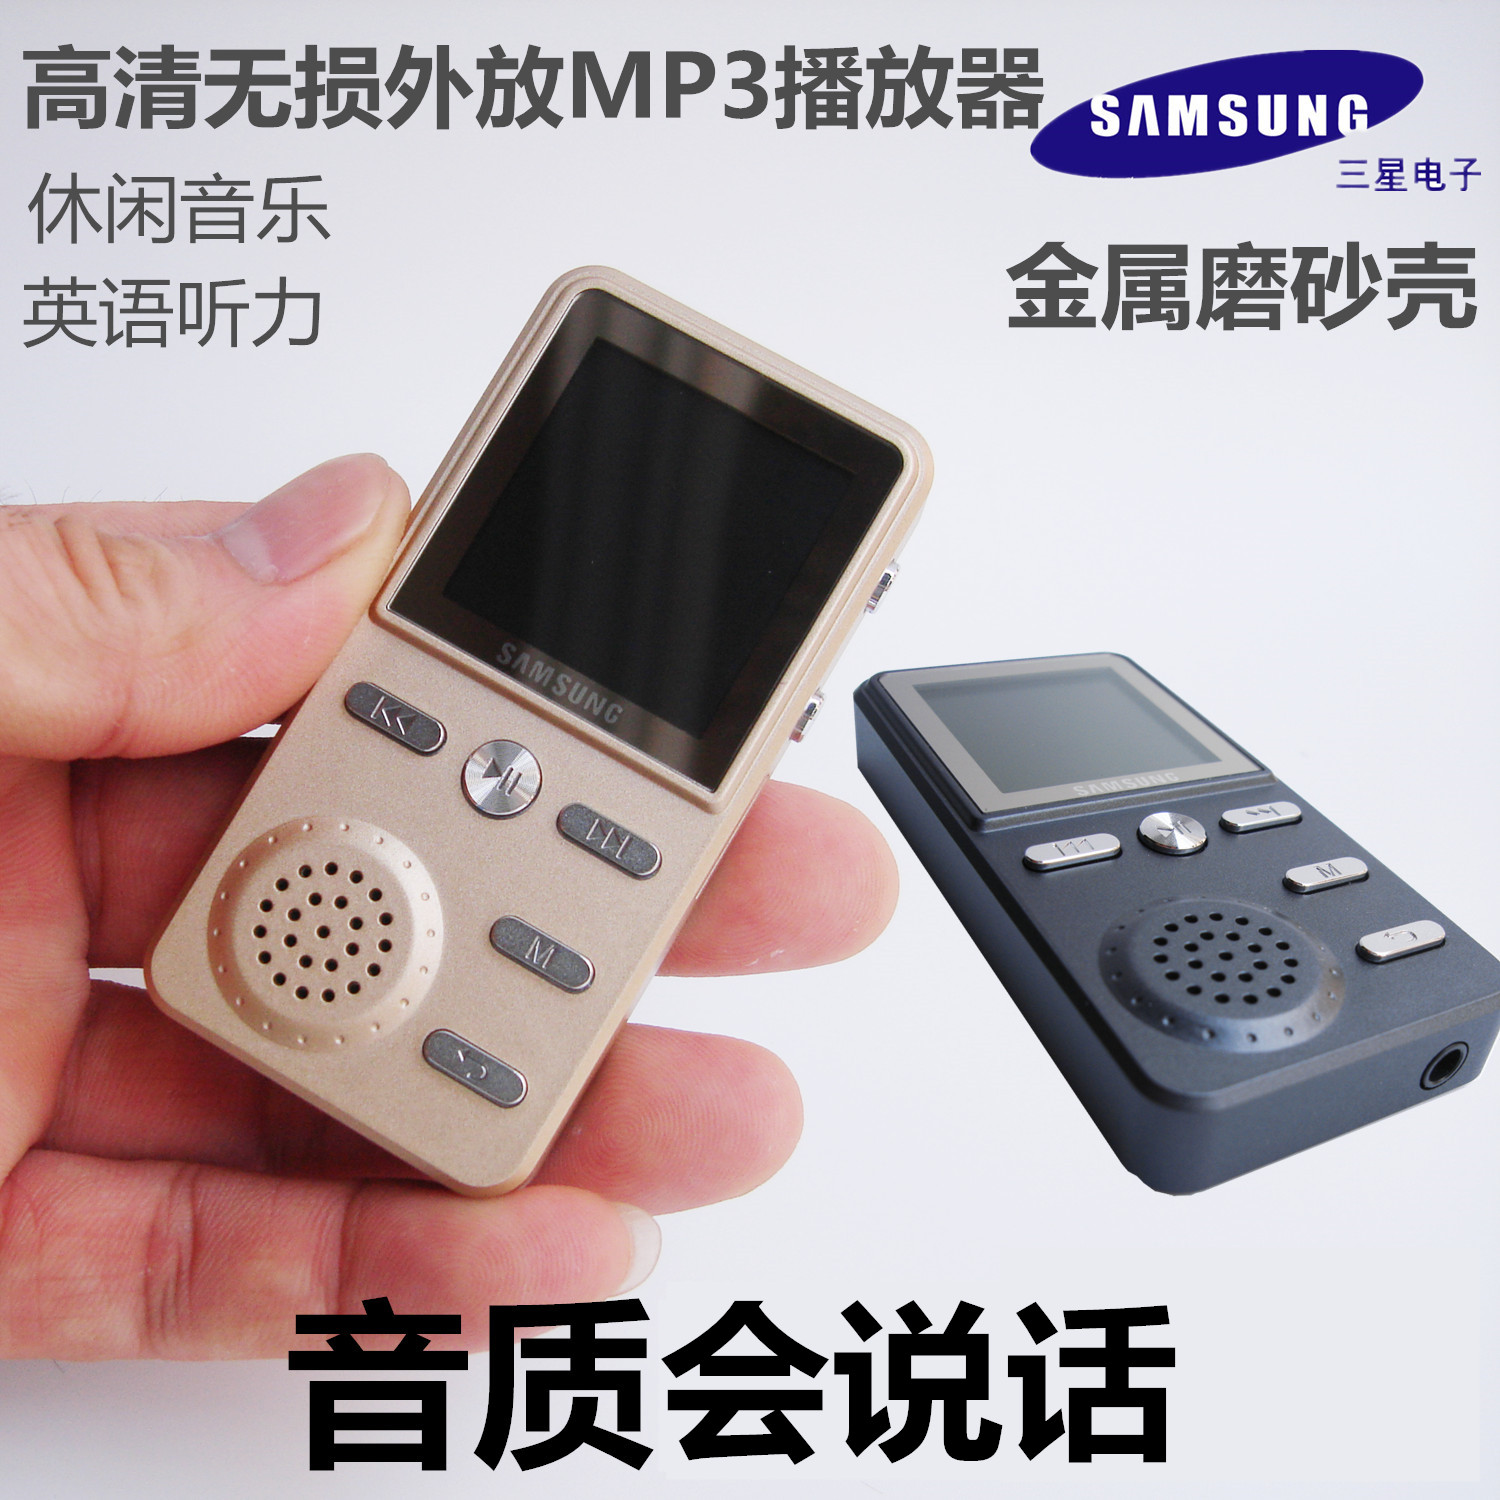 Samsung MP3 Playback Player HIFI lossless music metal shell card